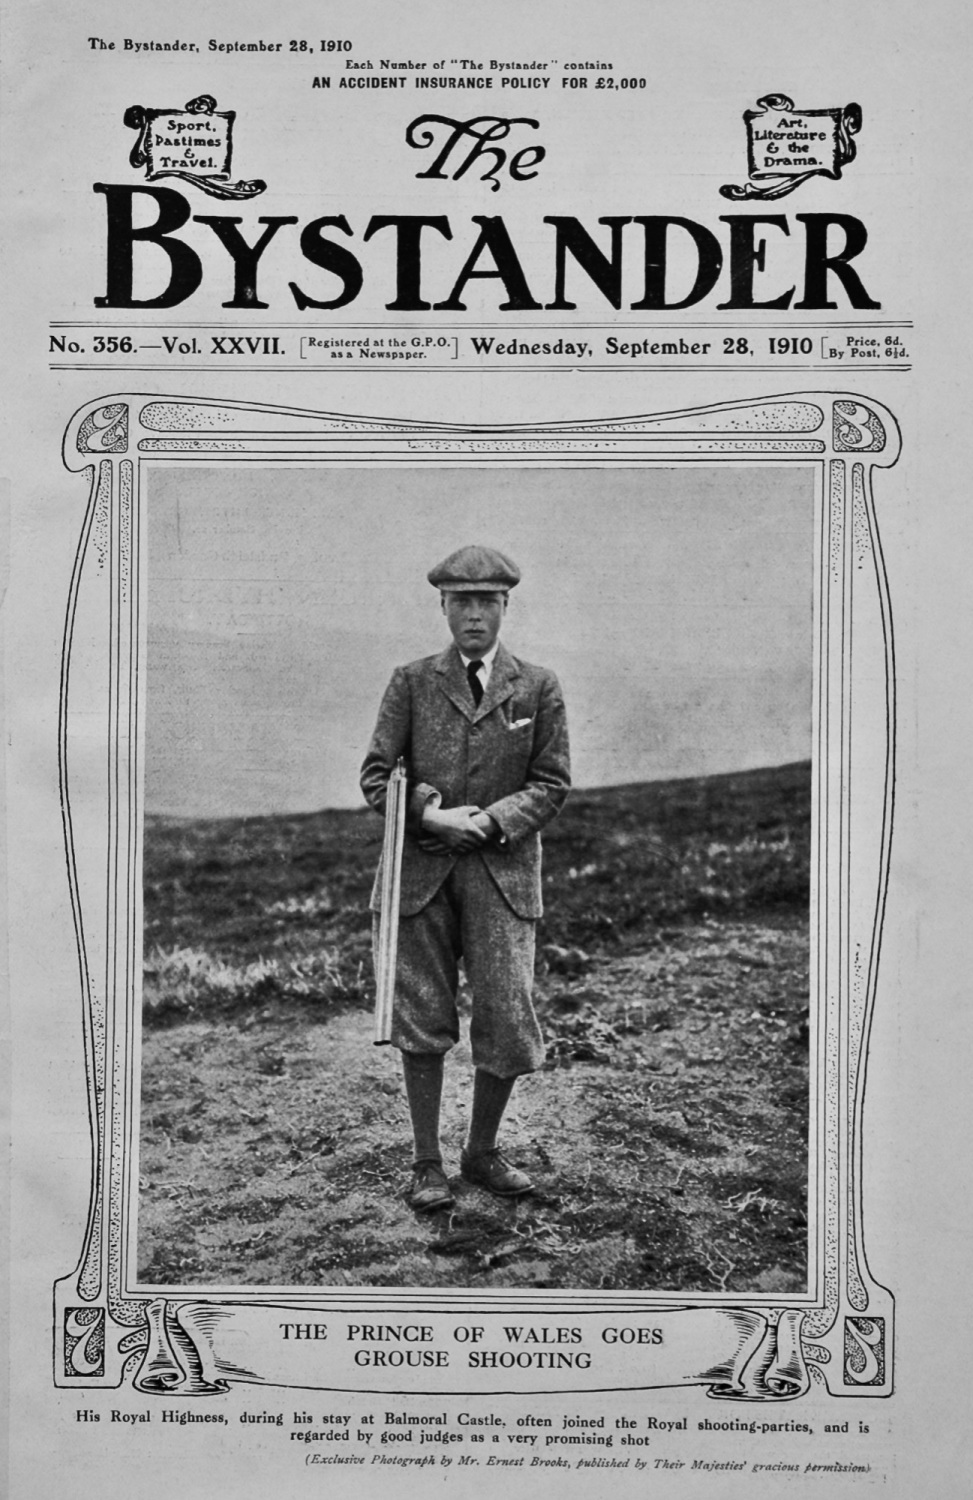 The Bystander Sept 28th 1910.